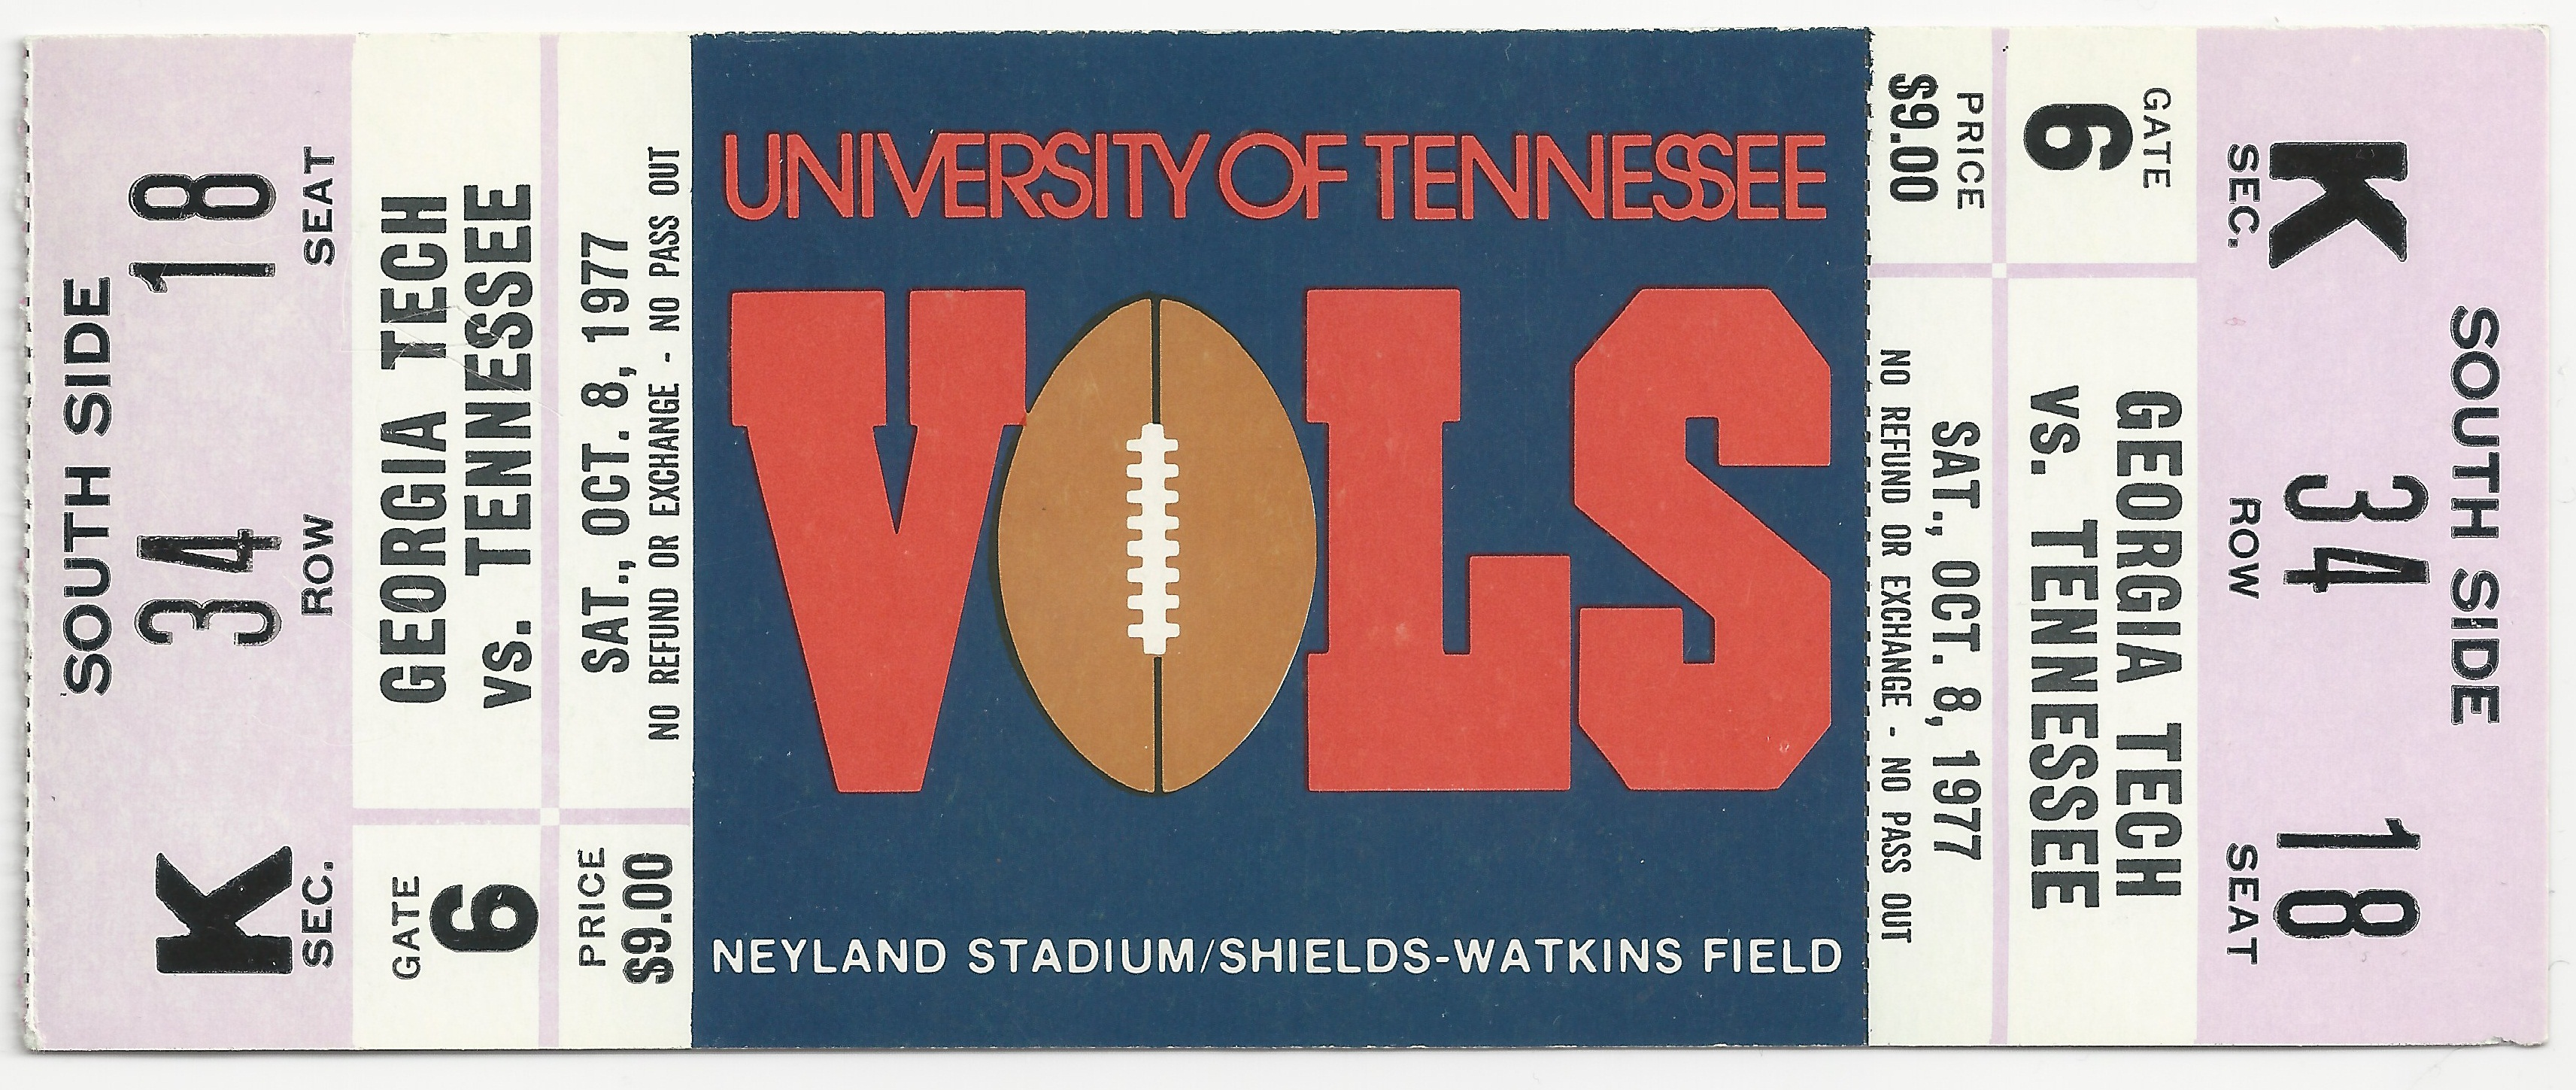 1977-10-08 - Georgia Tech at Tennessee - Full